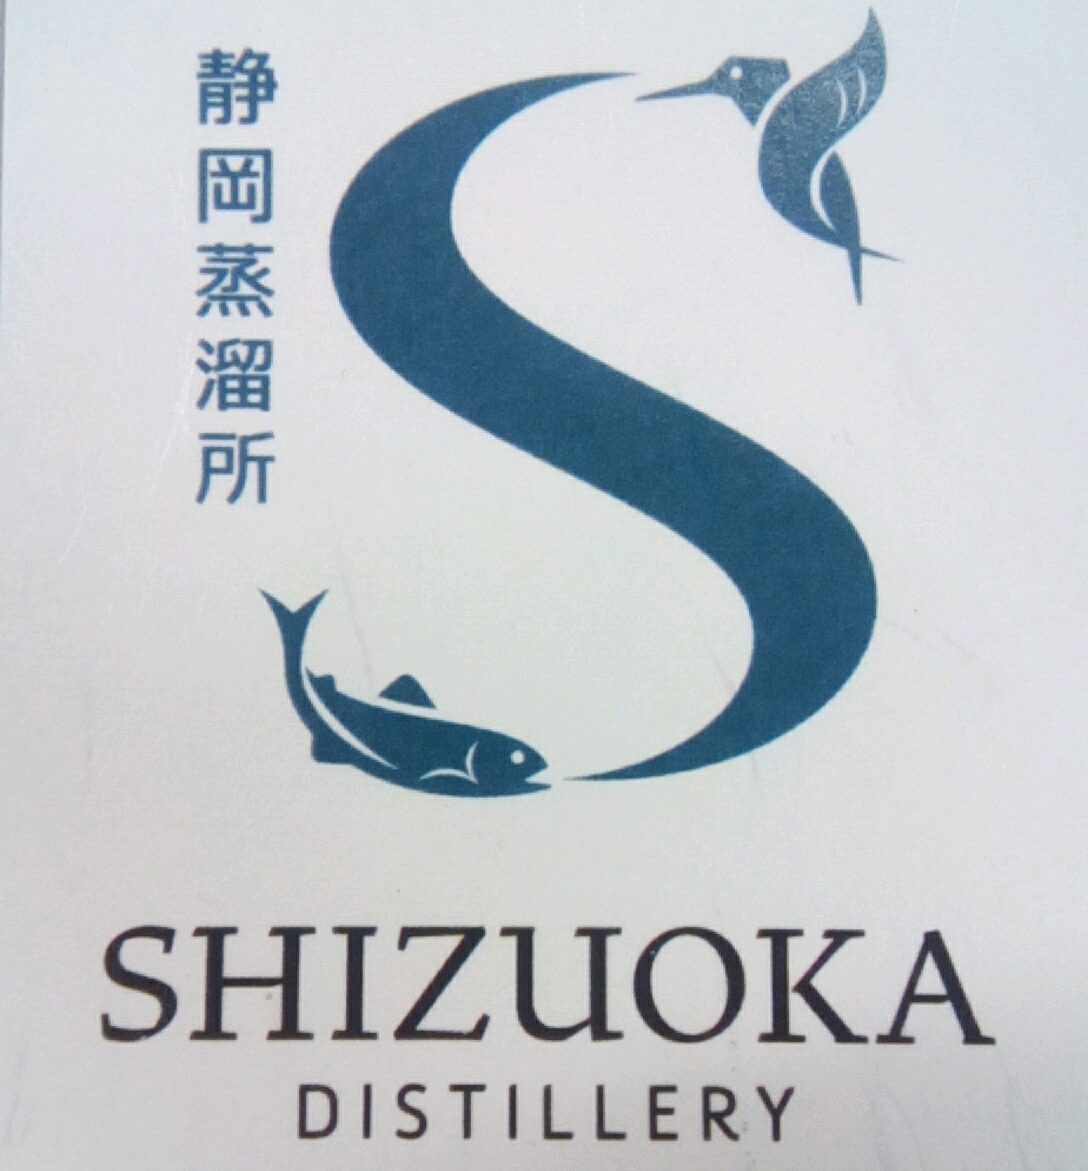 Shizuoka Distillery Premium Bottle Selection reservations open Oct 12, 12PM JST